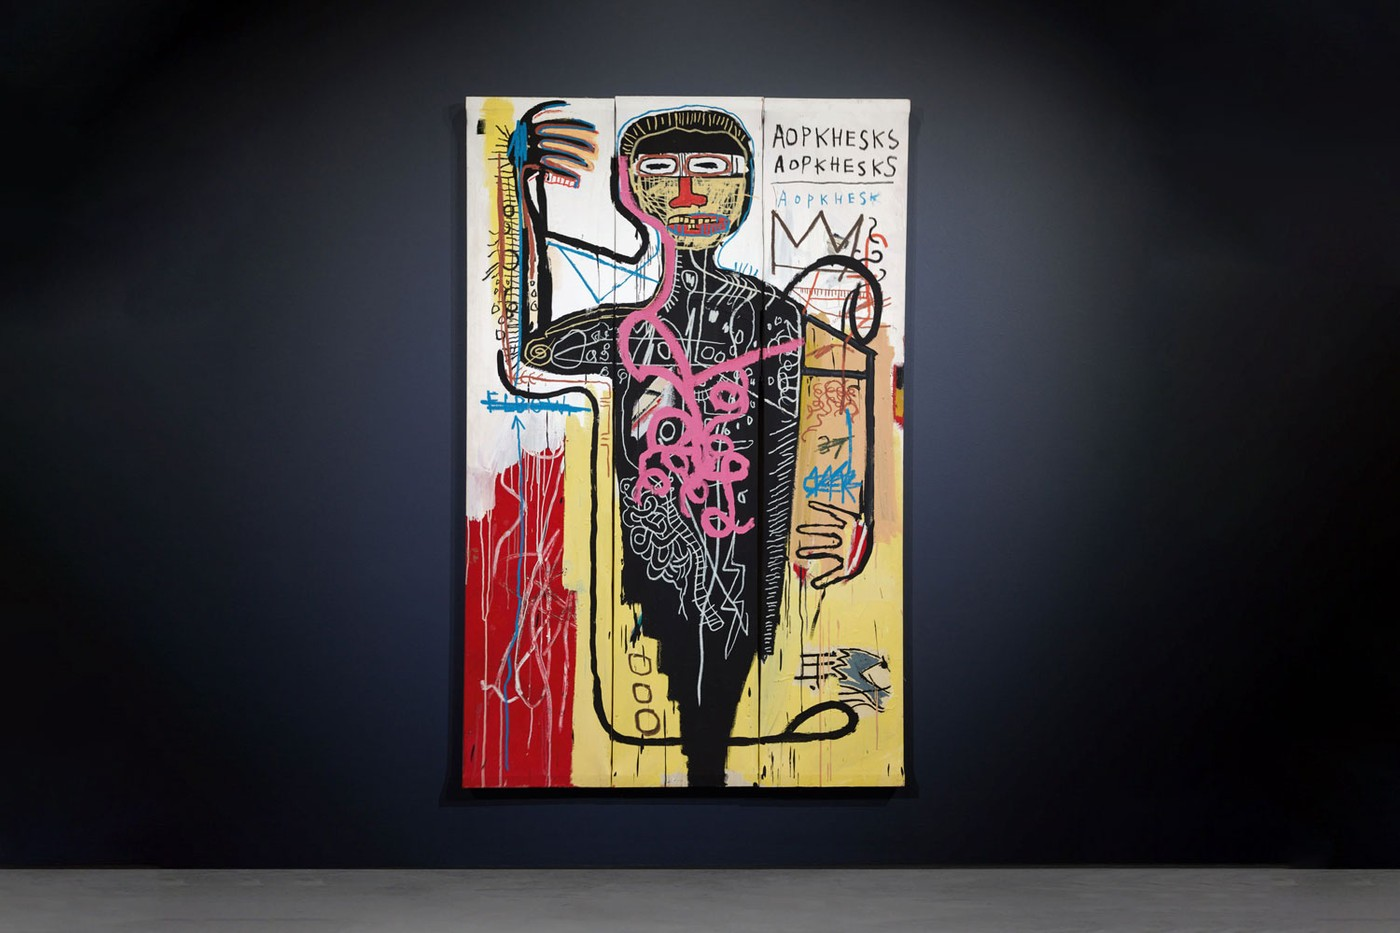 Jean-Michel Basquiat (1960 – 1988), Versus Medici, signed, titled and dated OCT. 1982 on the reverse, acrylic, oilstick and paper collage on three joined canvases, 84 ¼ by 54 ¼ in. 214 by 137.8 cm.  Sold at Sotheby's New York 12-5-2021, for USD 50.820.000